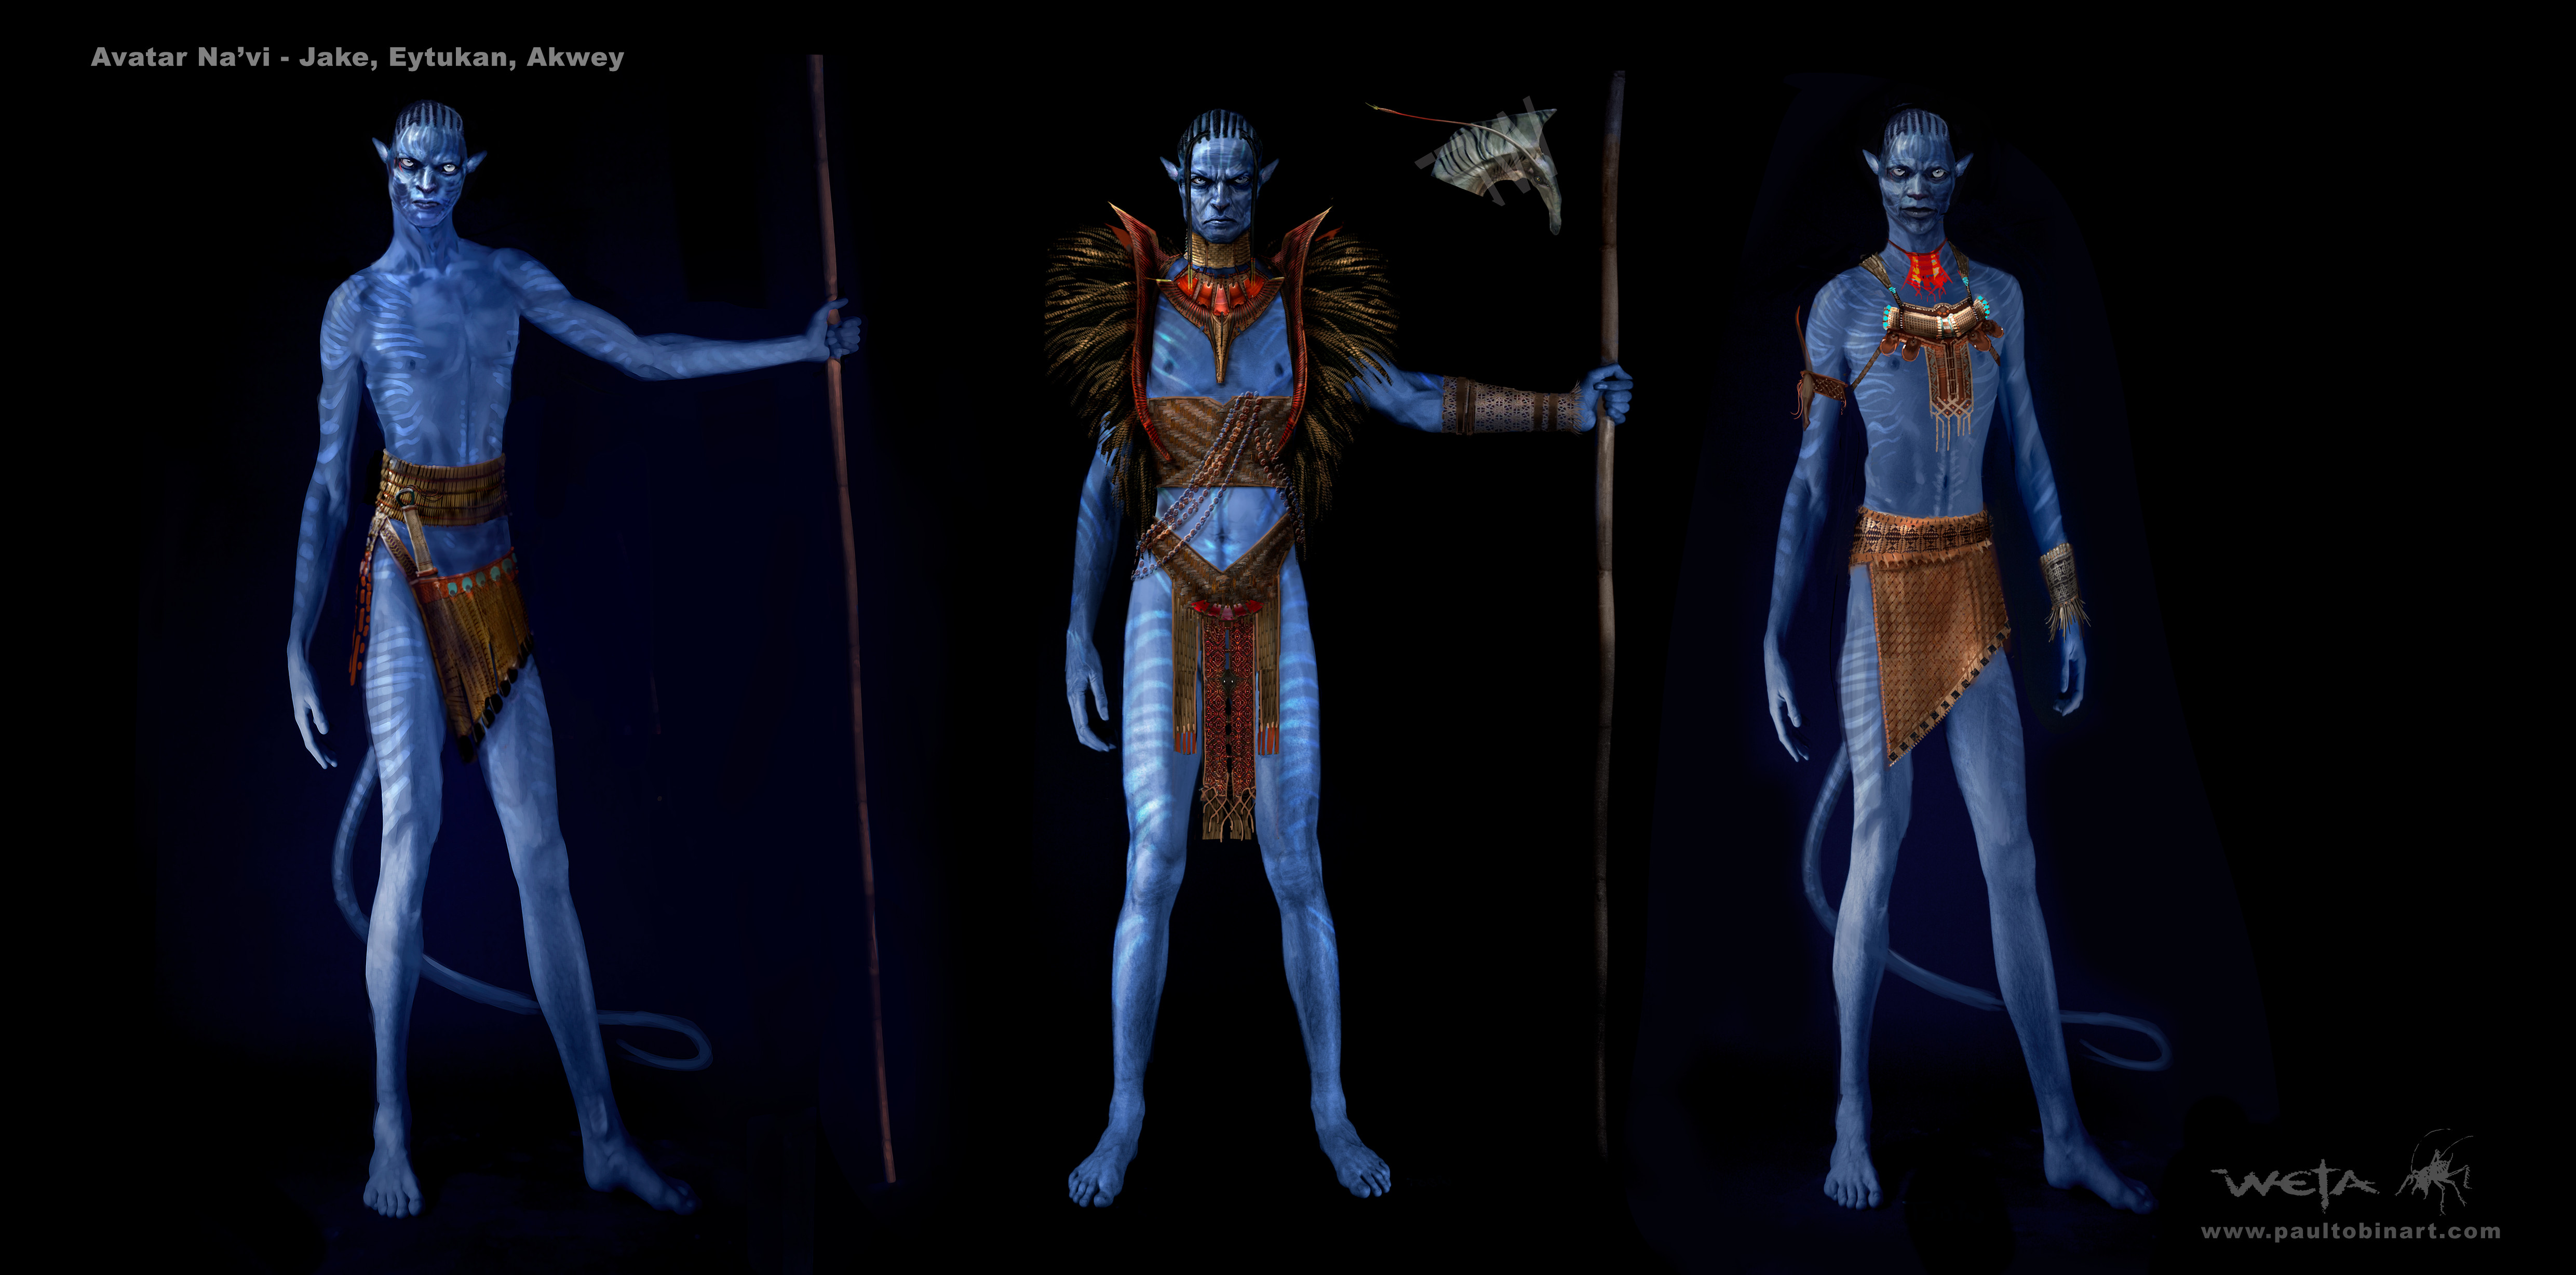 Concept art from Avatar. Image courtesy of Weta Workshop.